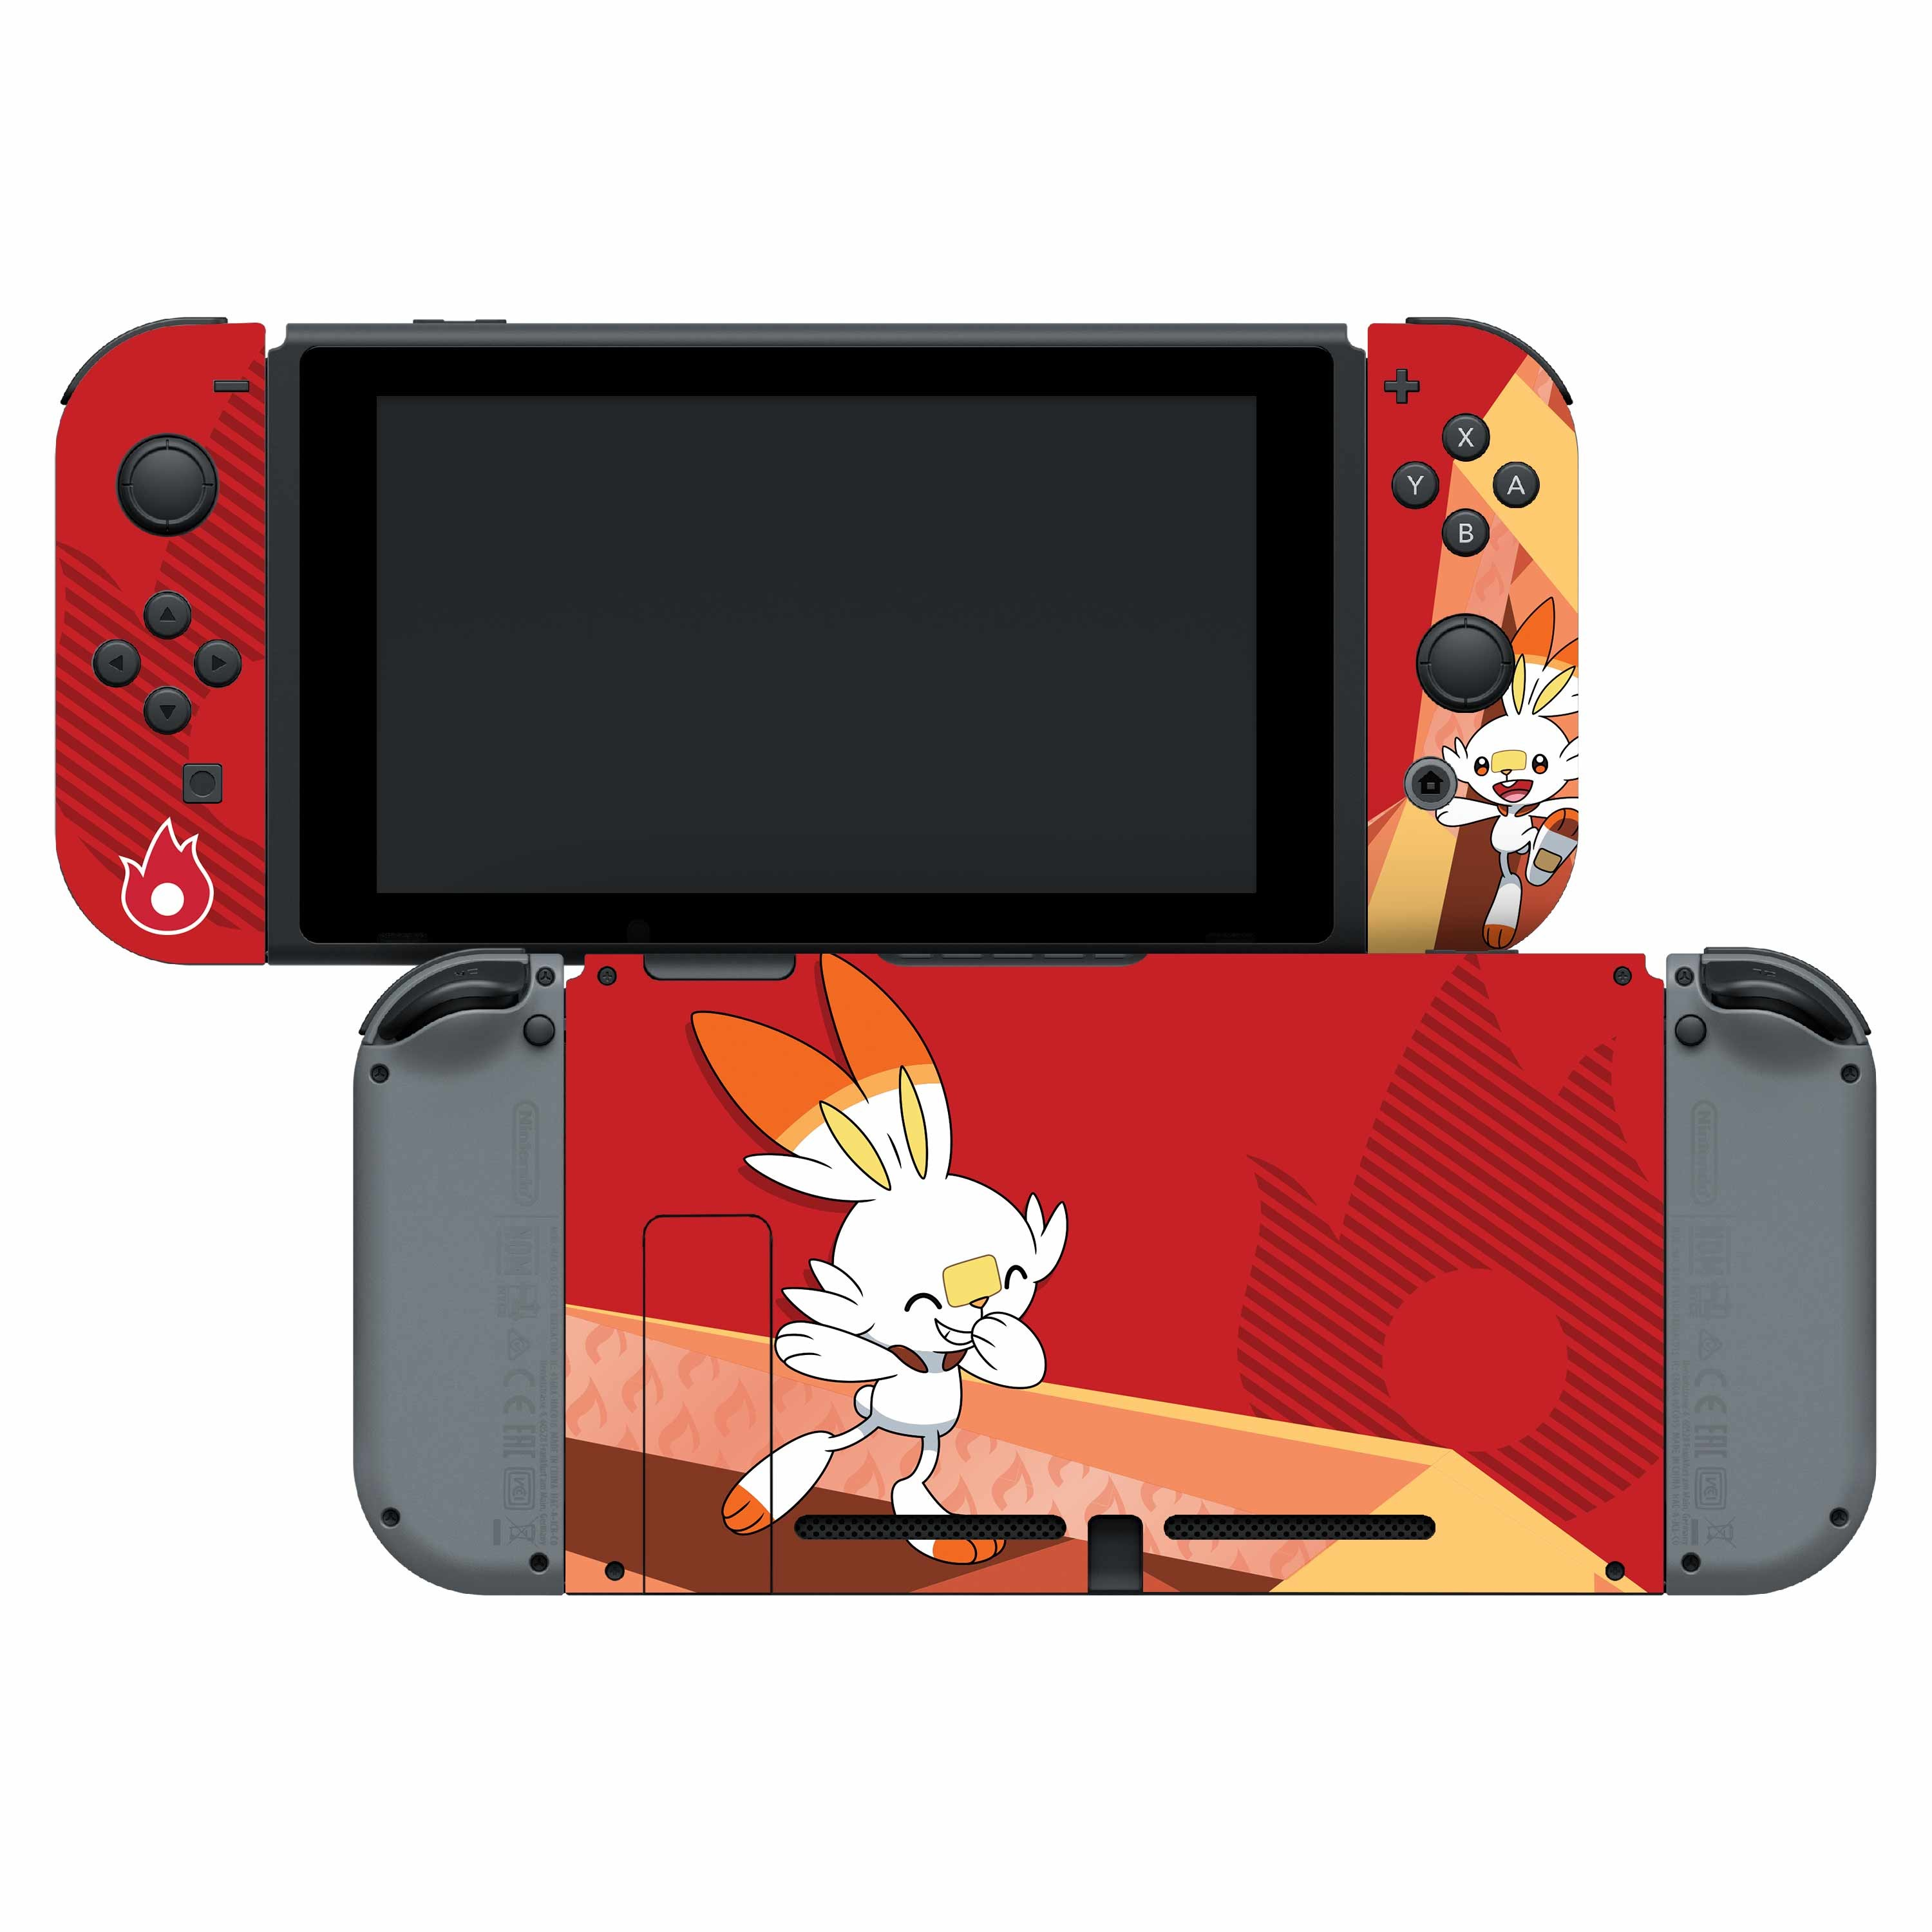 Nintendo Switch Skin & Screen Protector Set with a Pokemon Scorbunny Design, Image 1